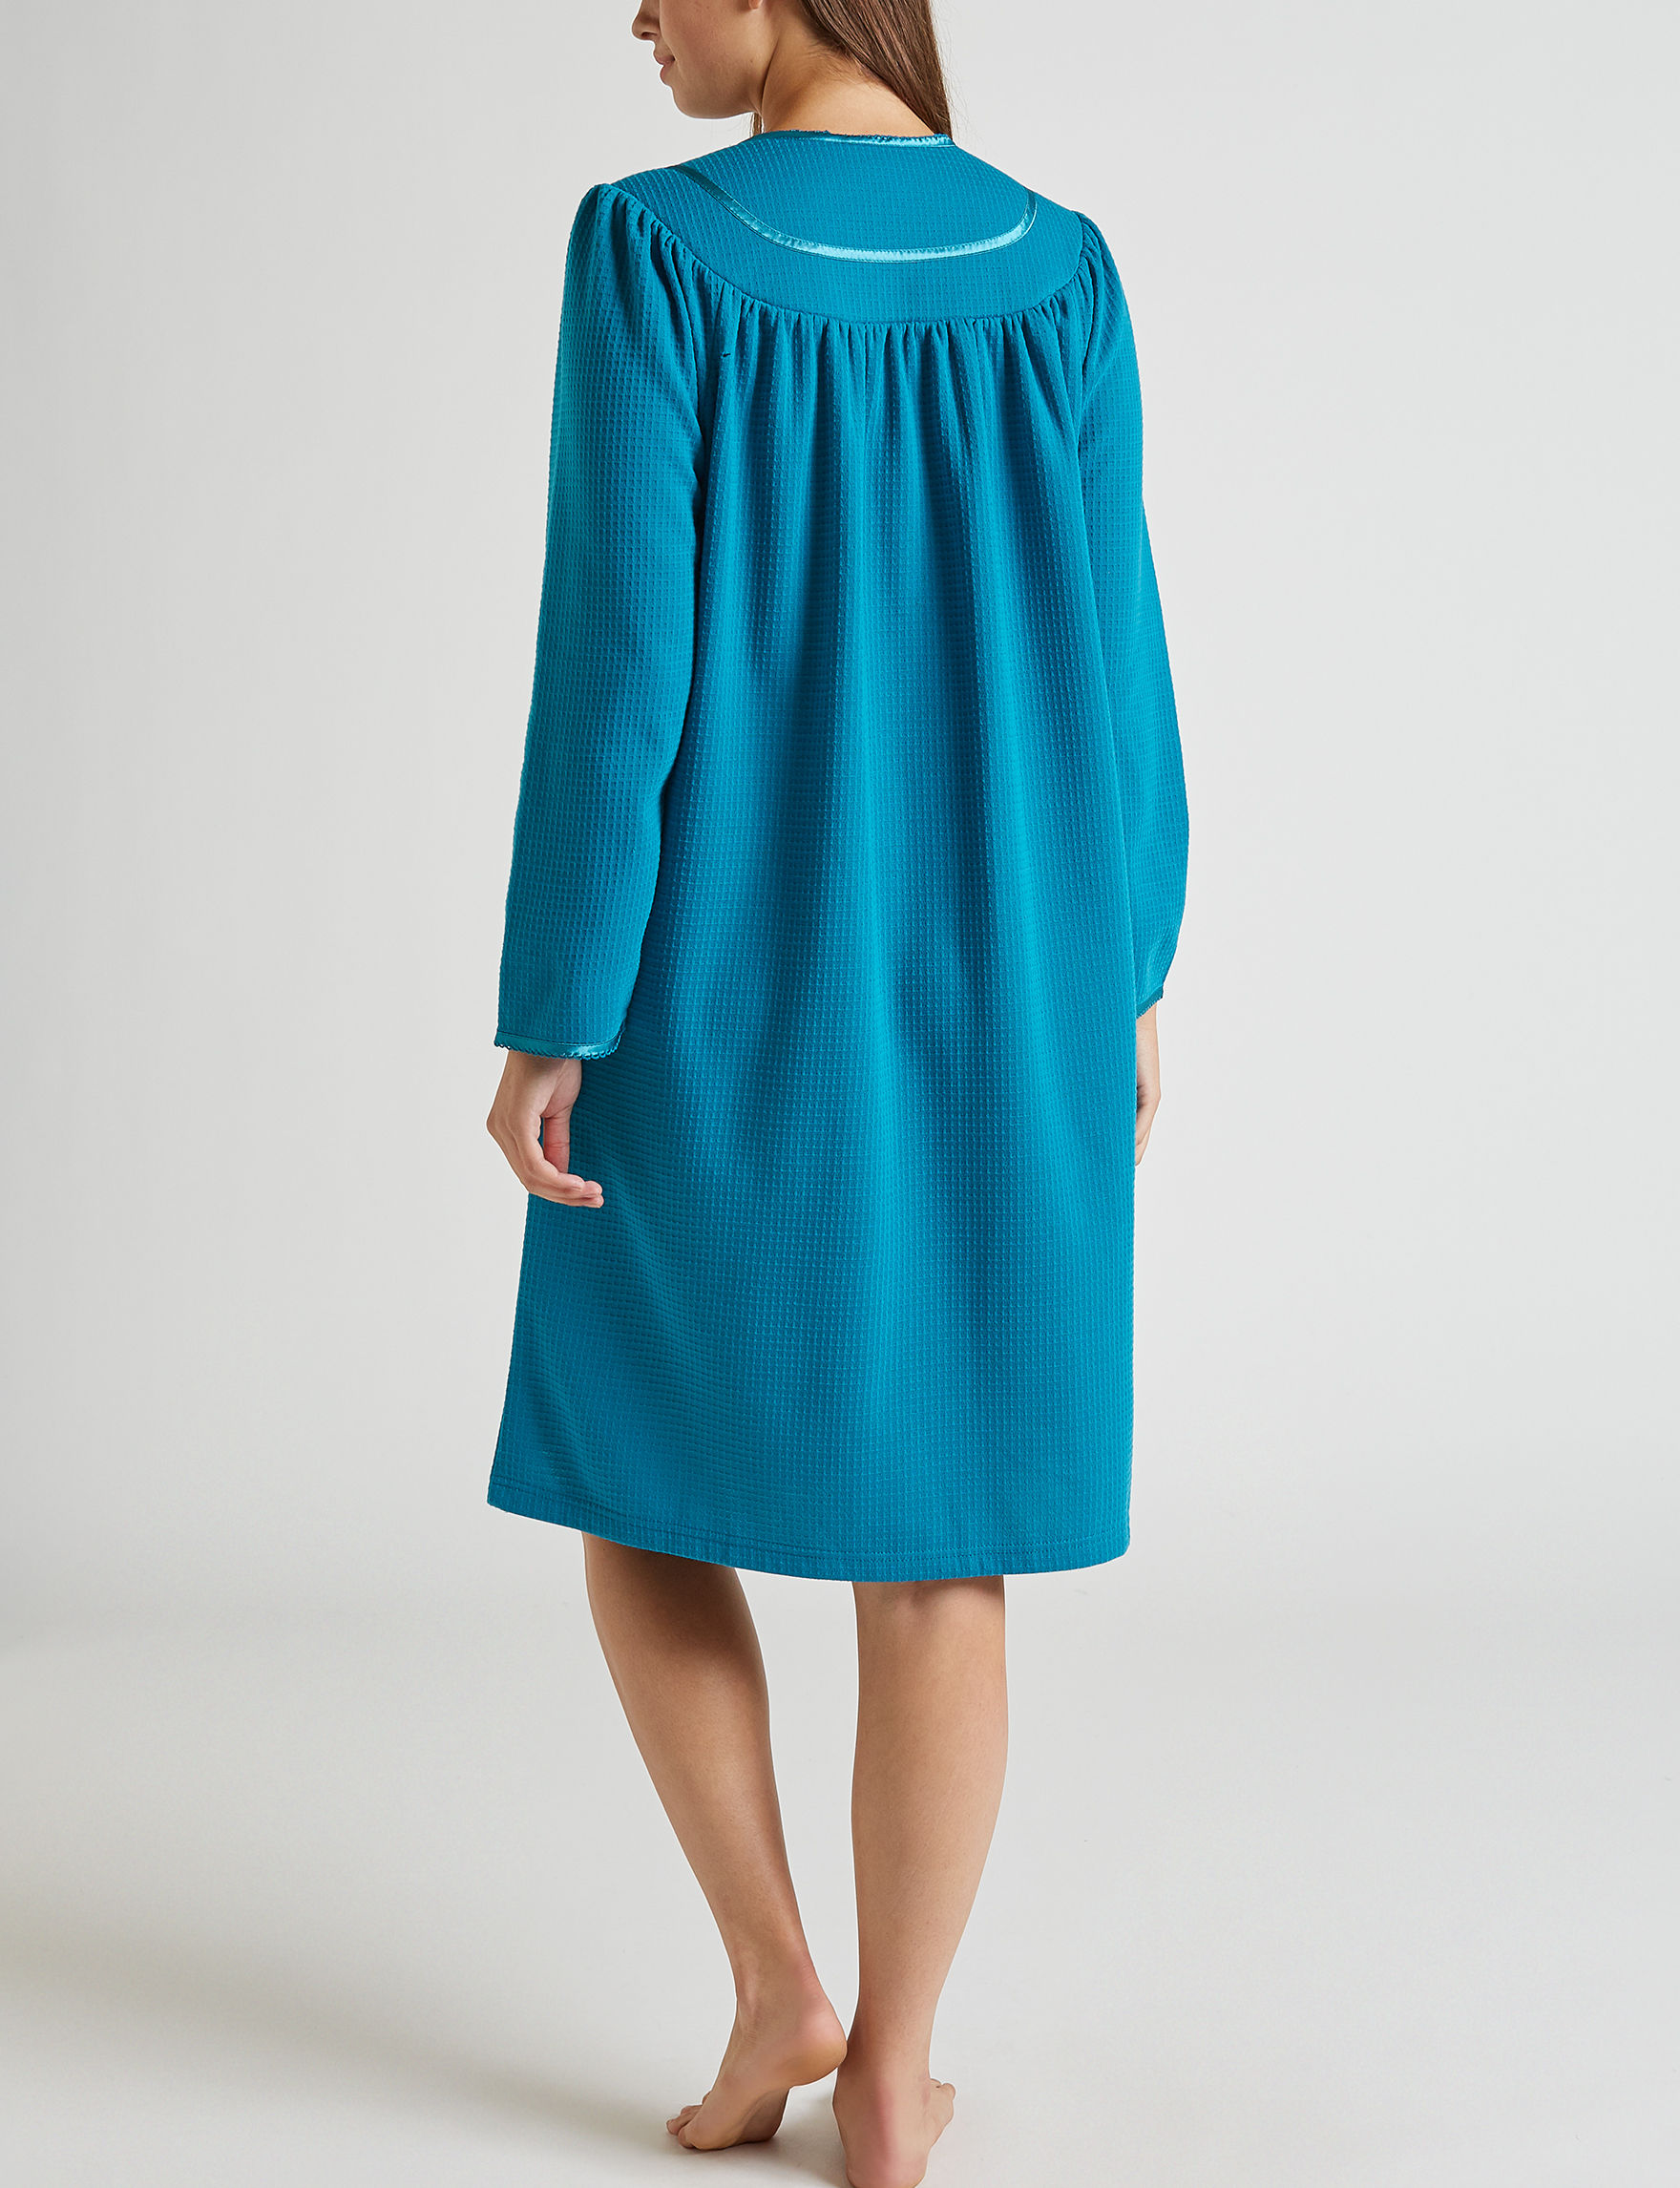 Rebecca Malone Teal Robes, Wraps & Dusters